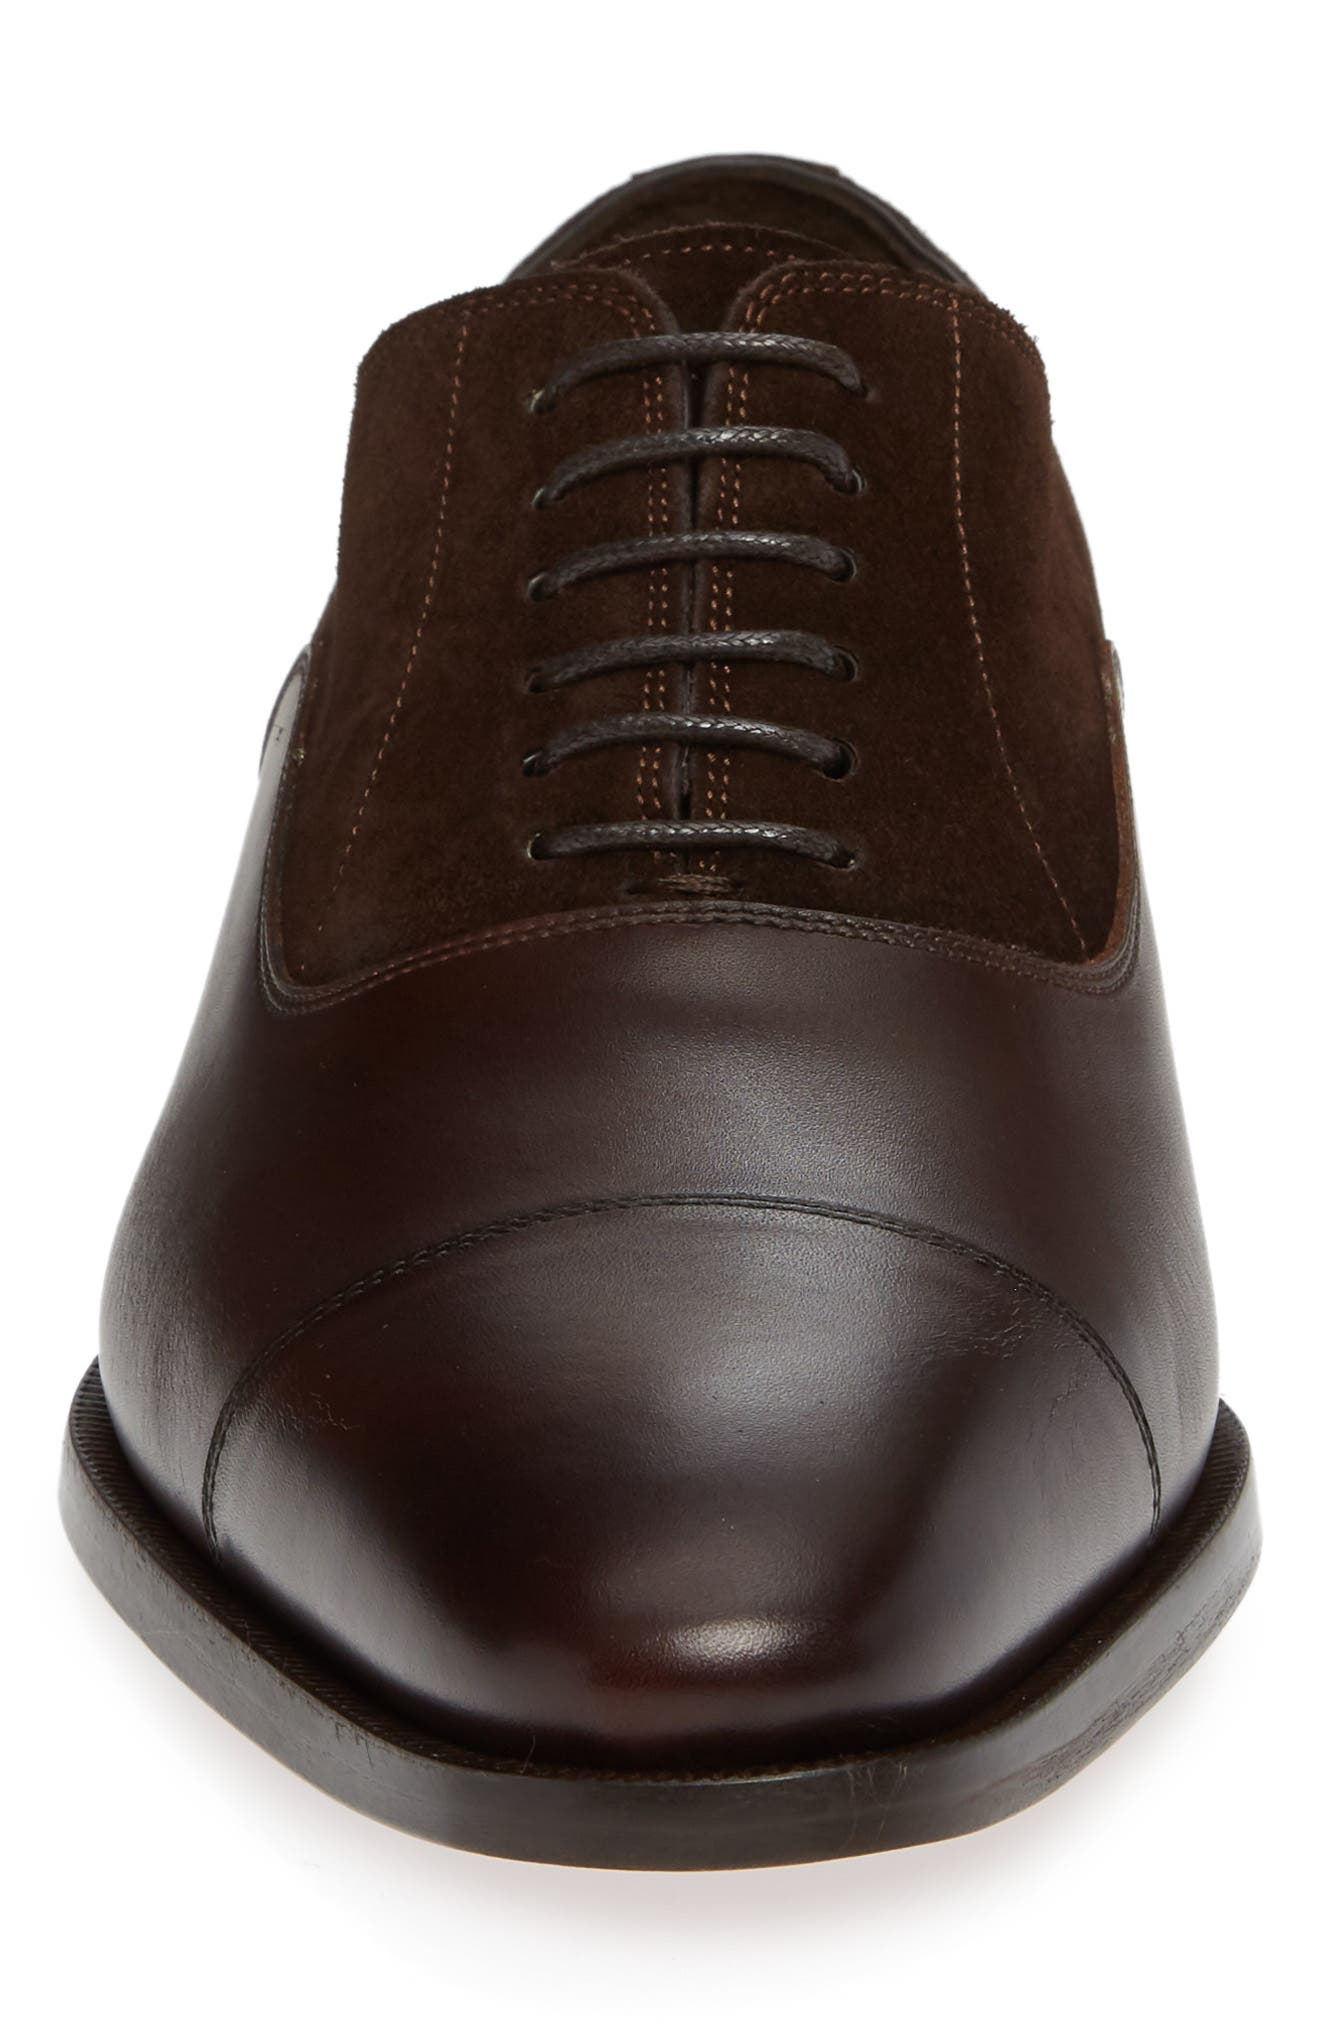 Amadora Cap Toe Oxford,                             Alternate thumbnail 4, color,                             BERRY/ BROWN LEATHER